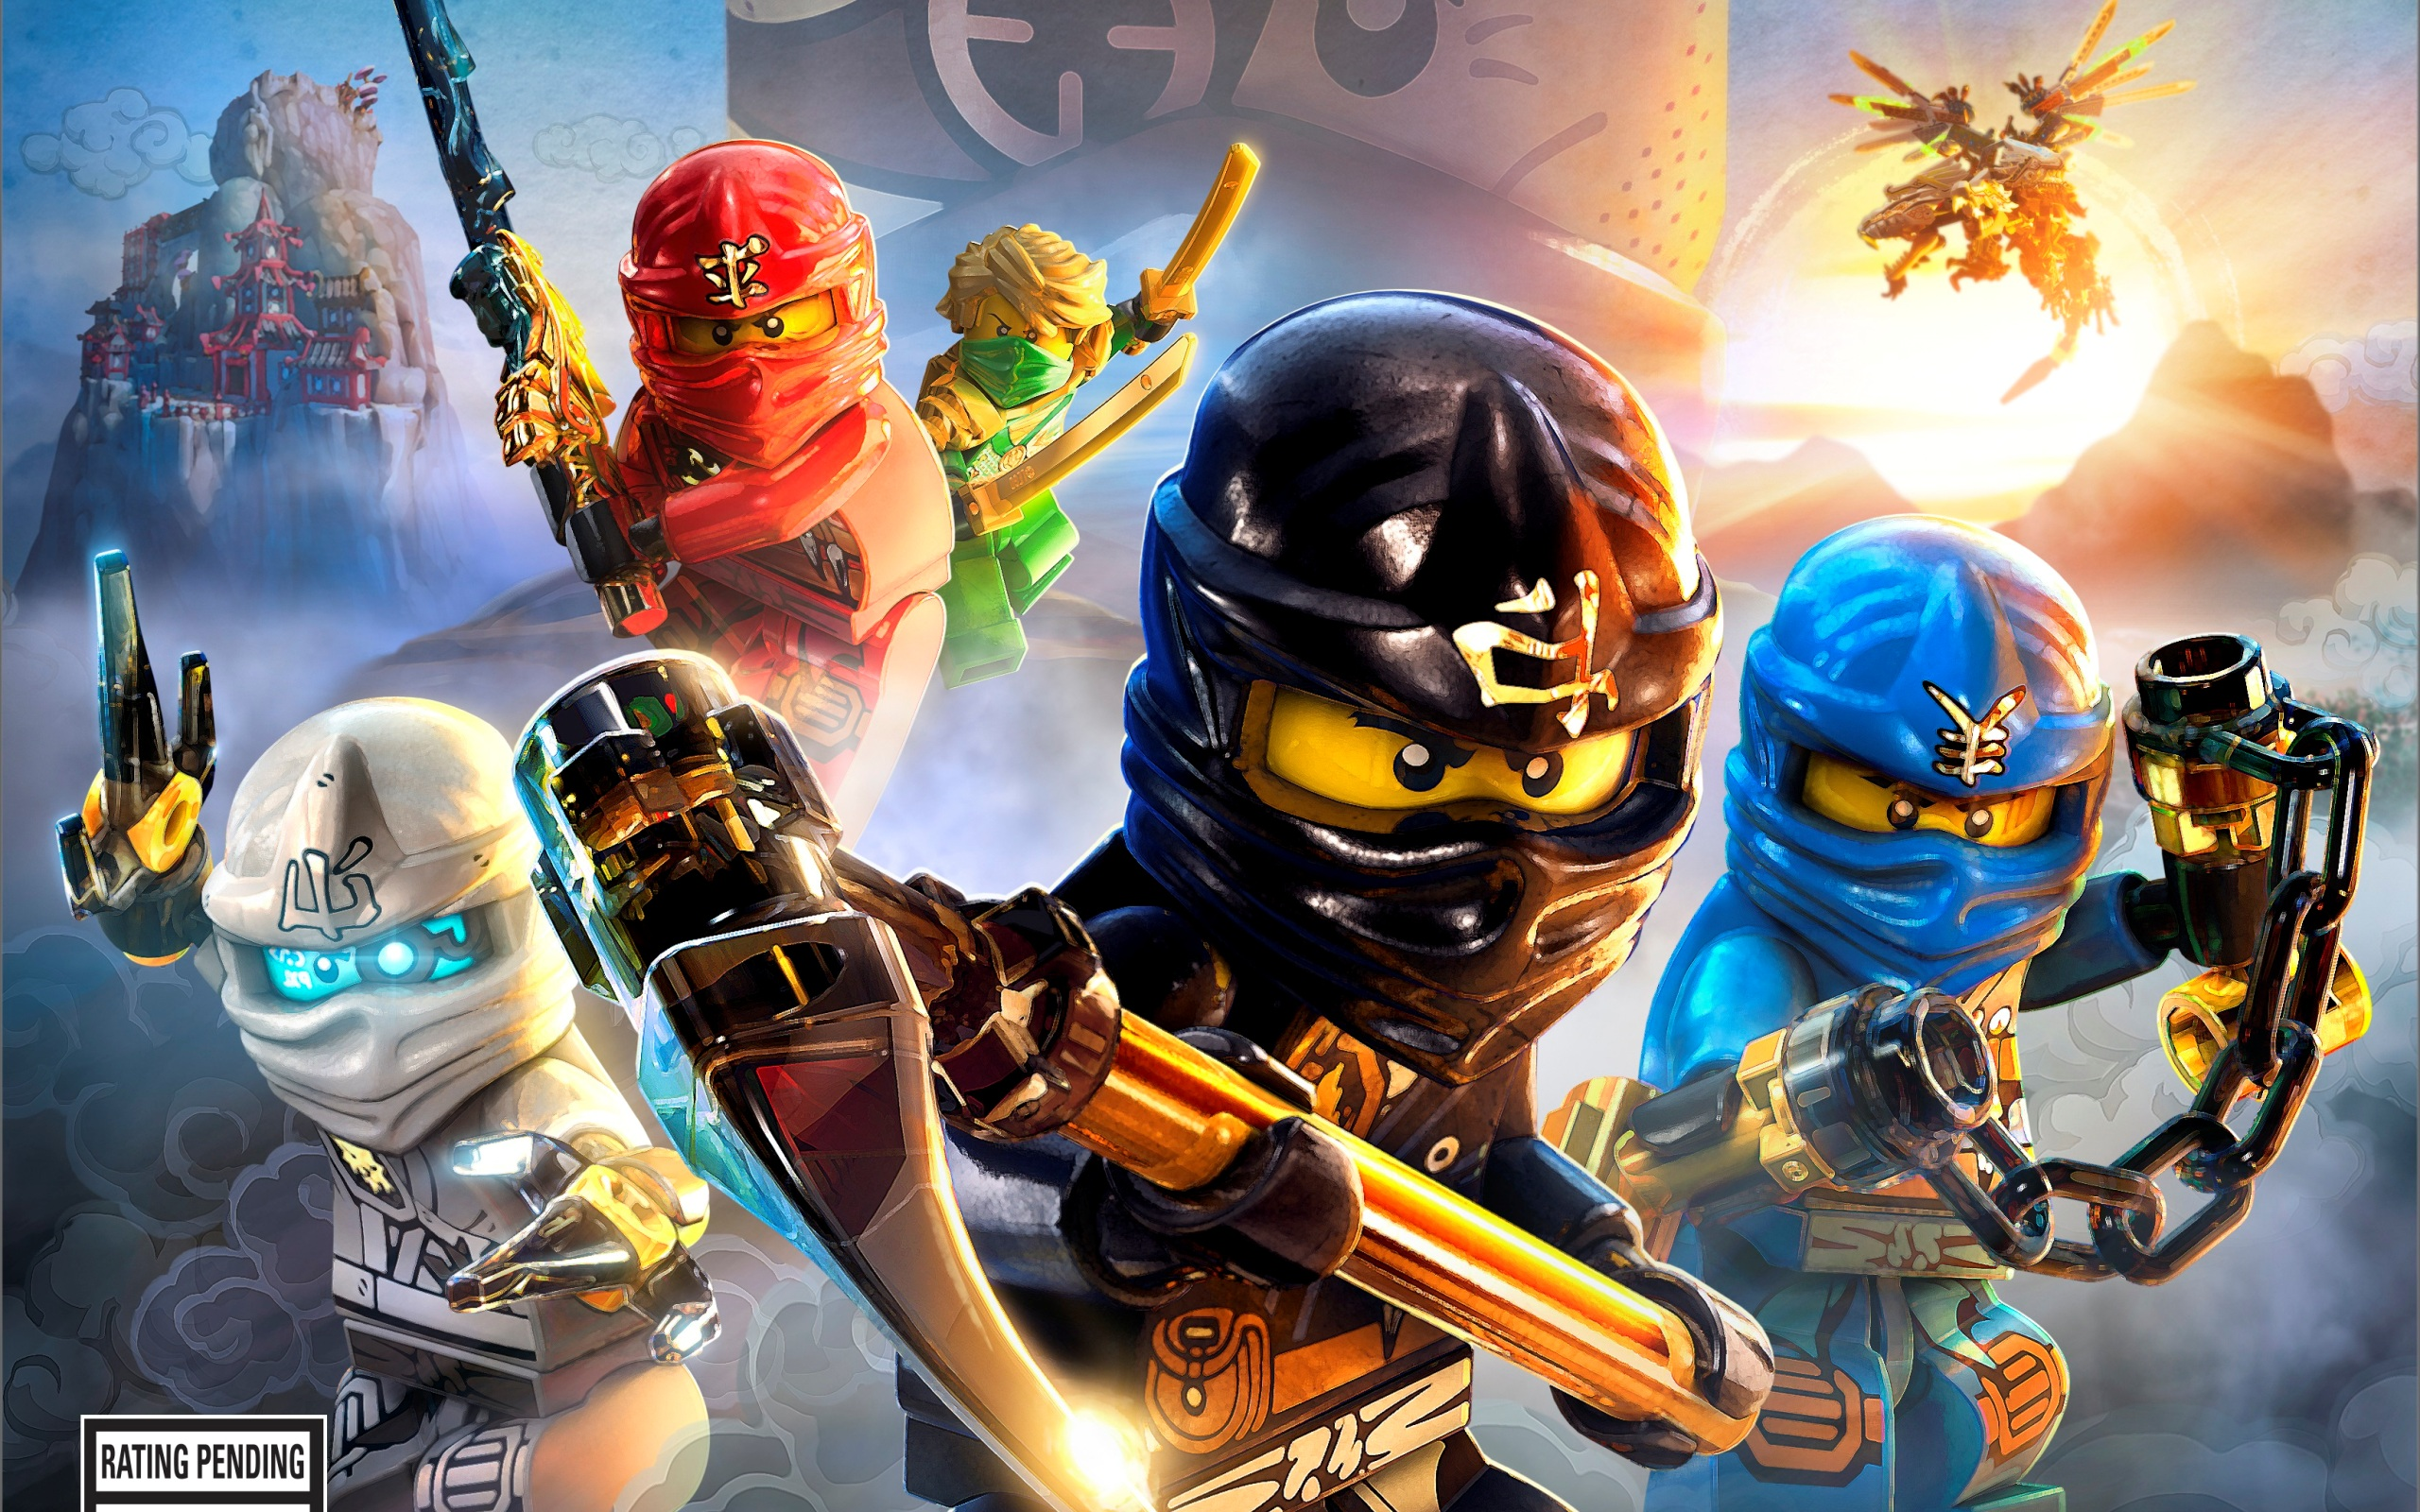 Lego Bedroom Wallpaper Lego Ninjago Wallpaper Wallpapersafari